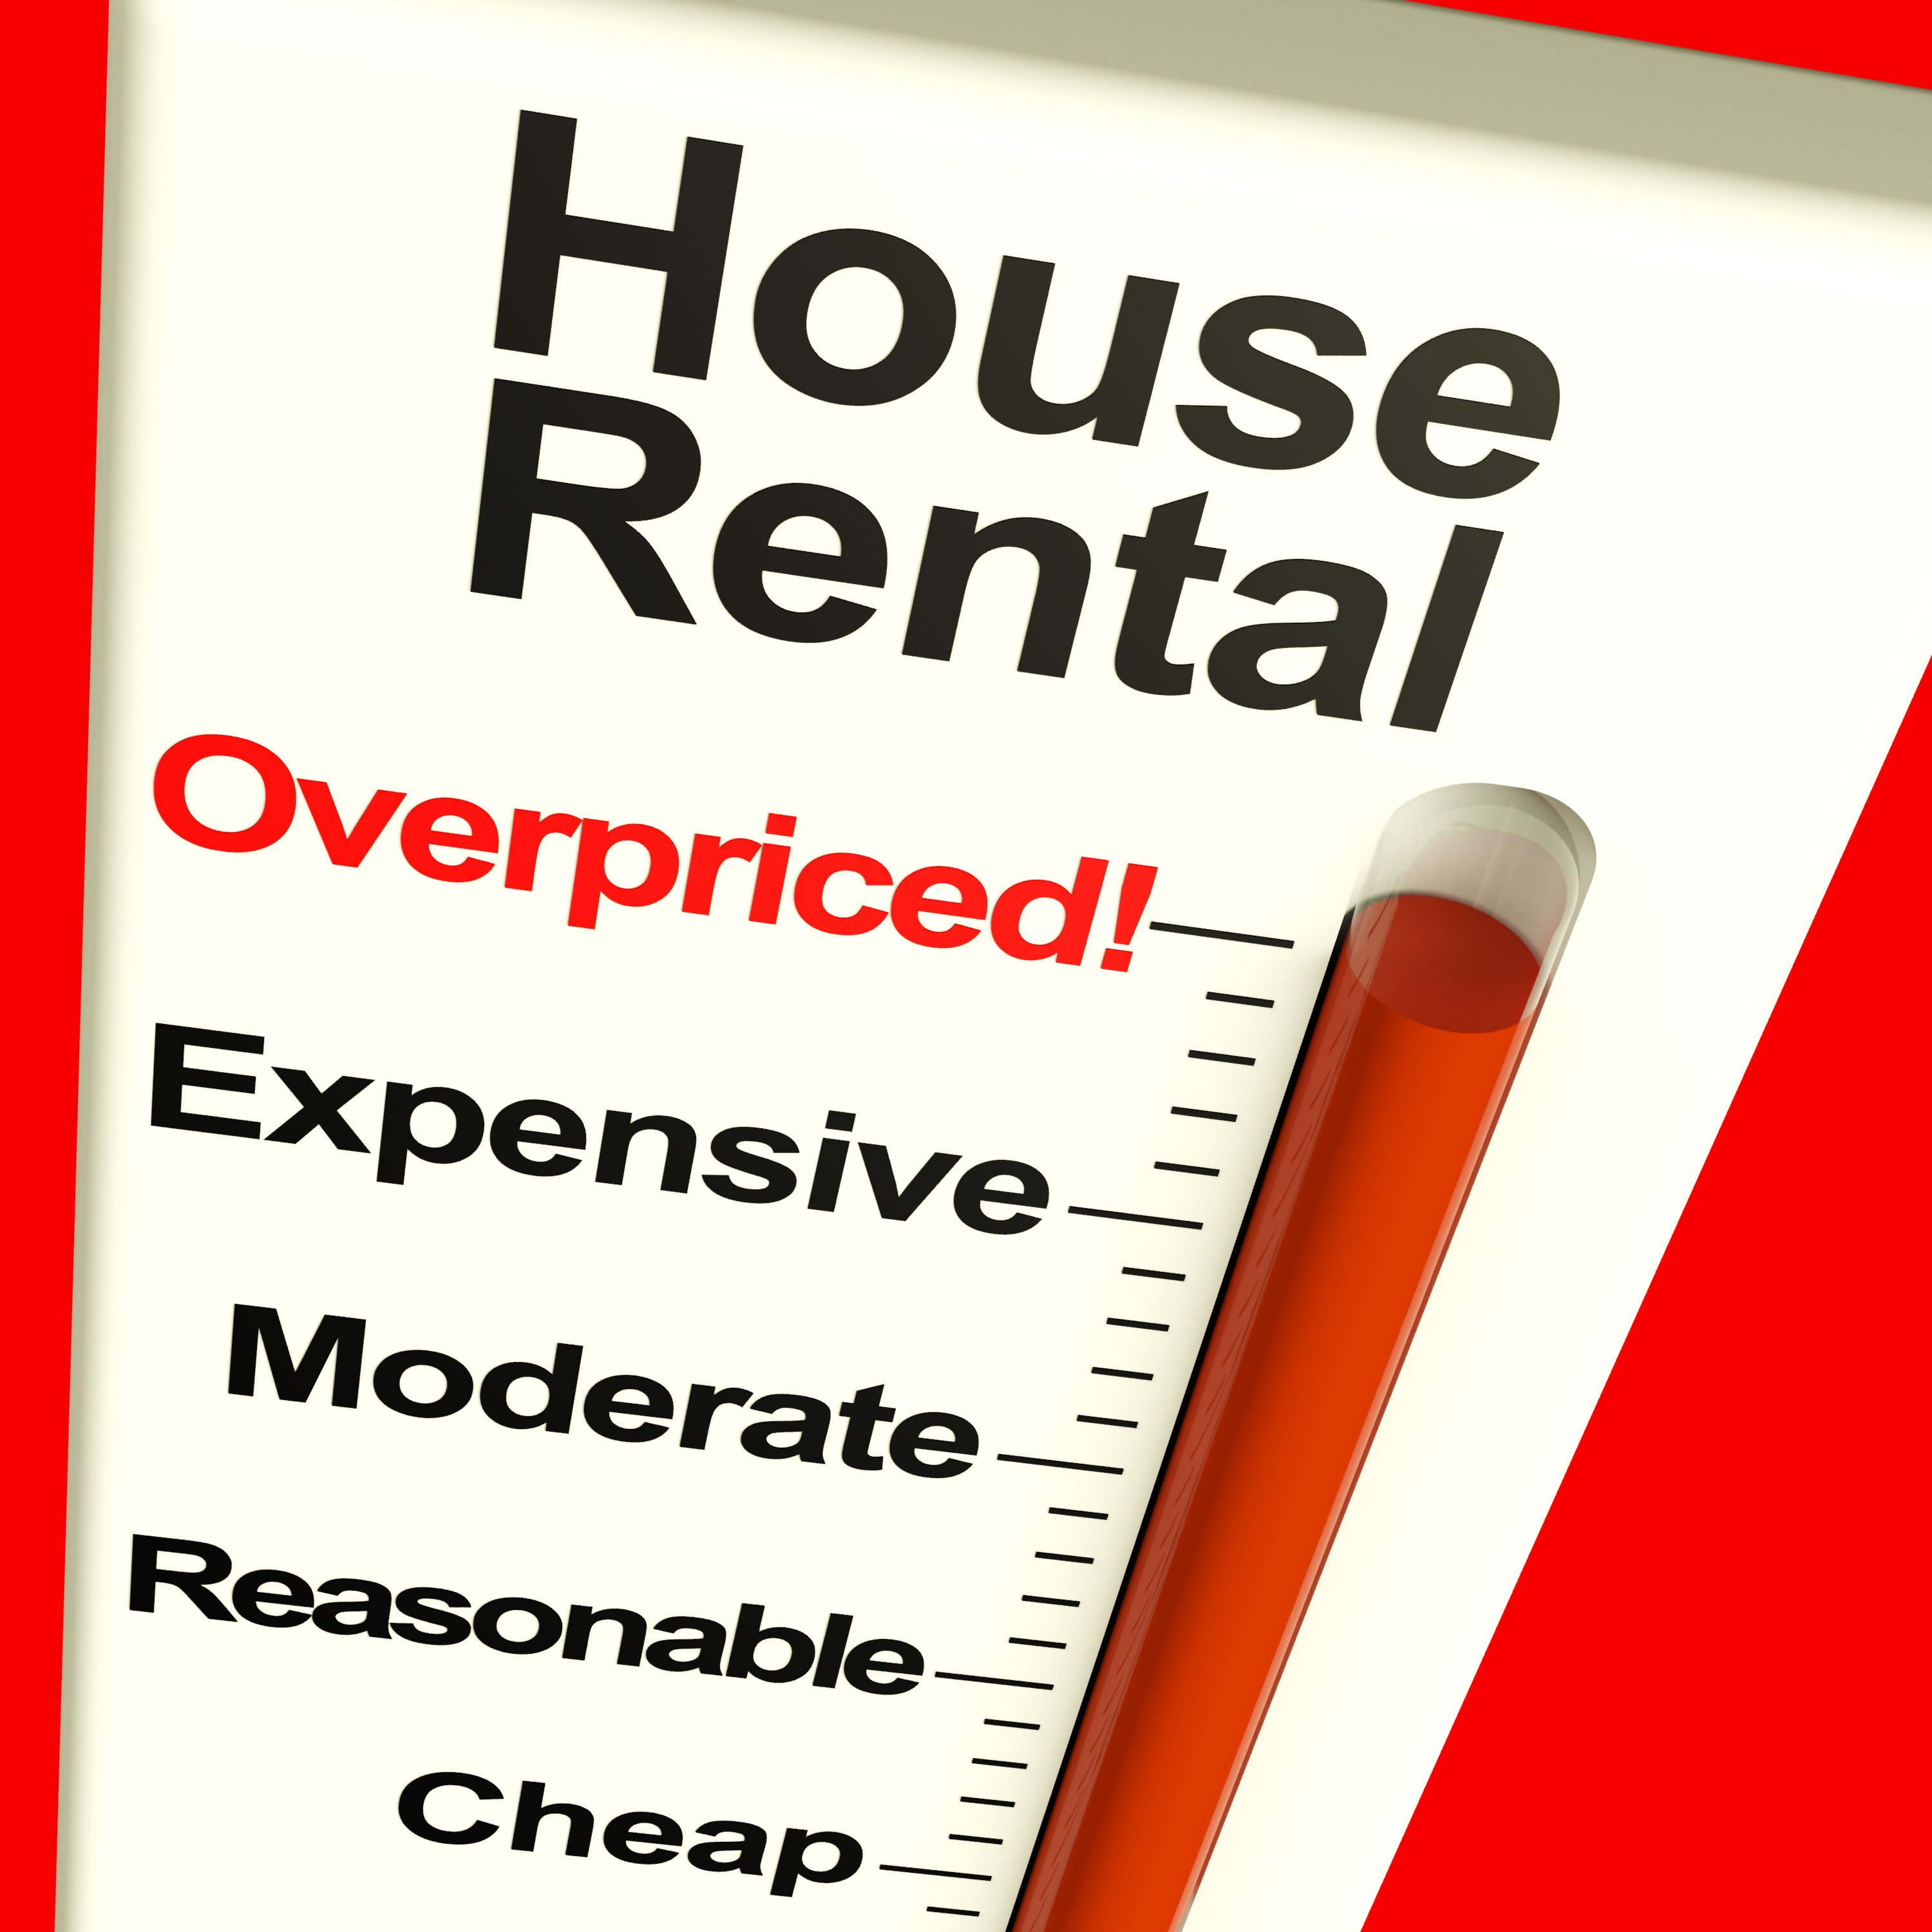 House rental thermometer||||